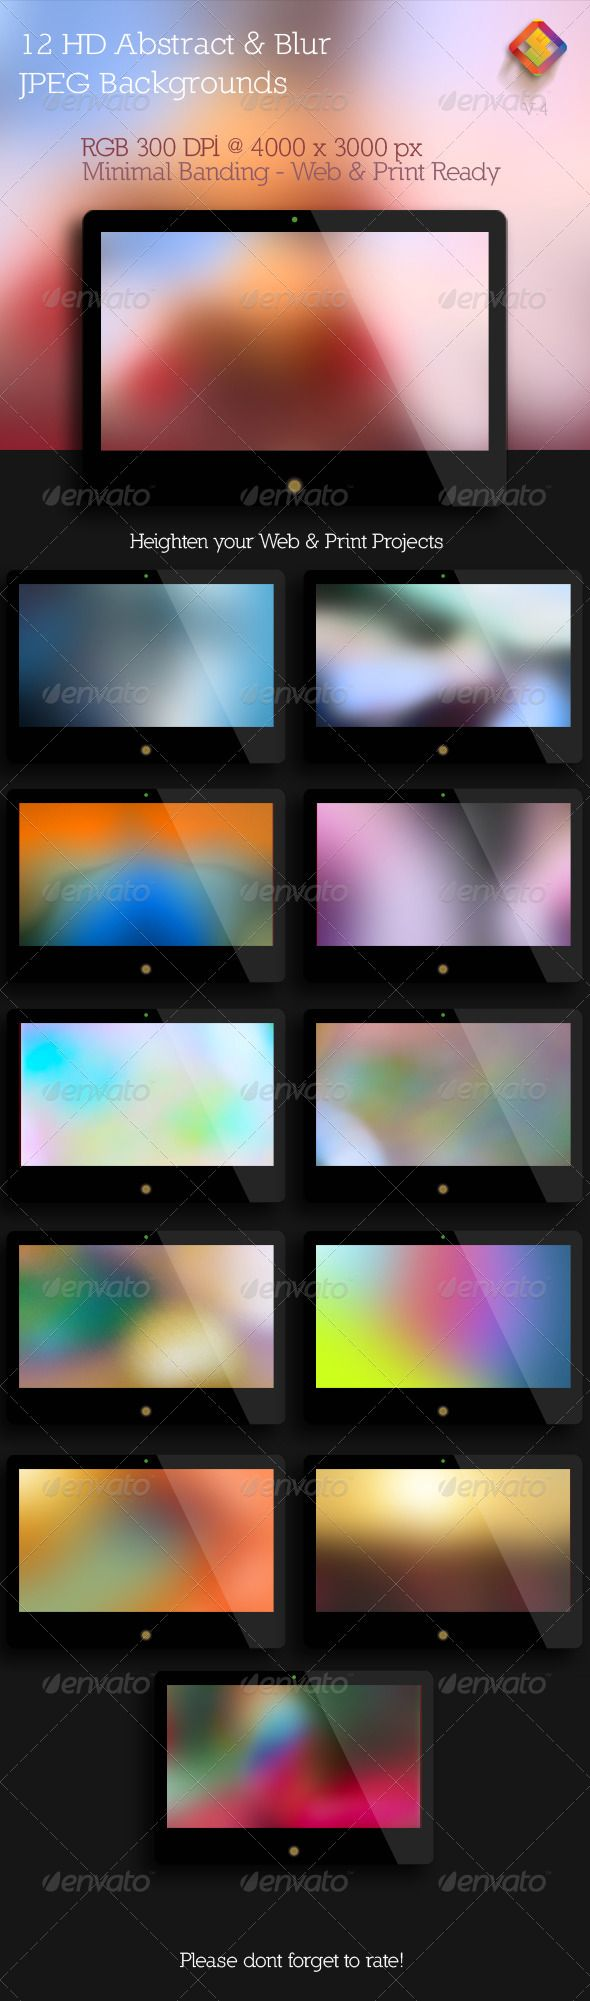 Abstract and Blur Backgrounds  V.4